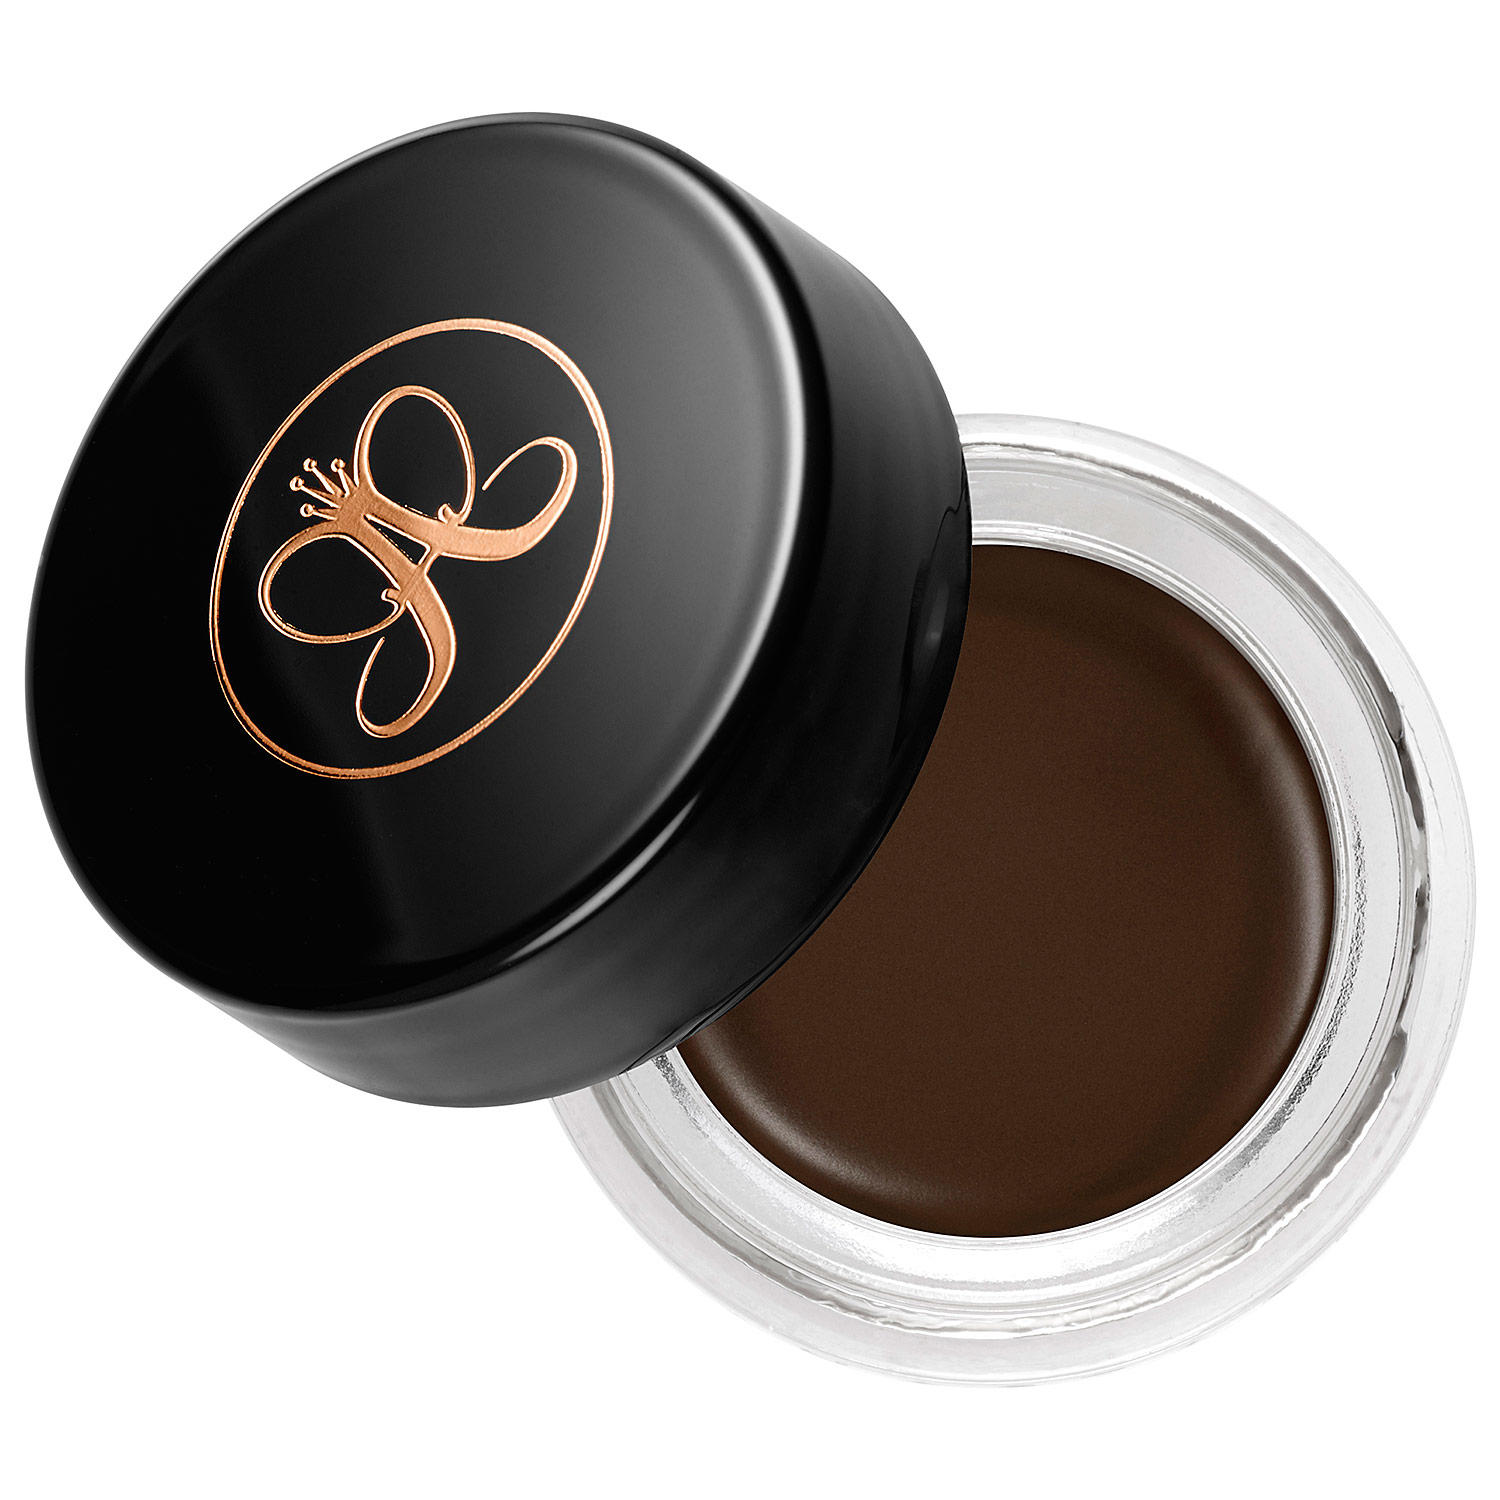 Anastasia DIPBROW Pomade Ash Brown